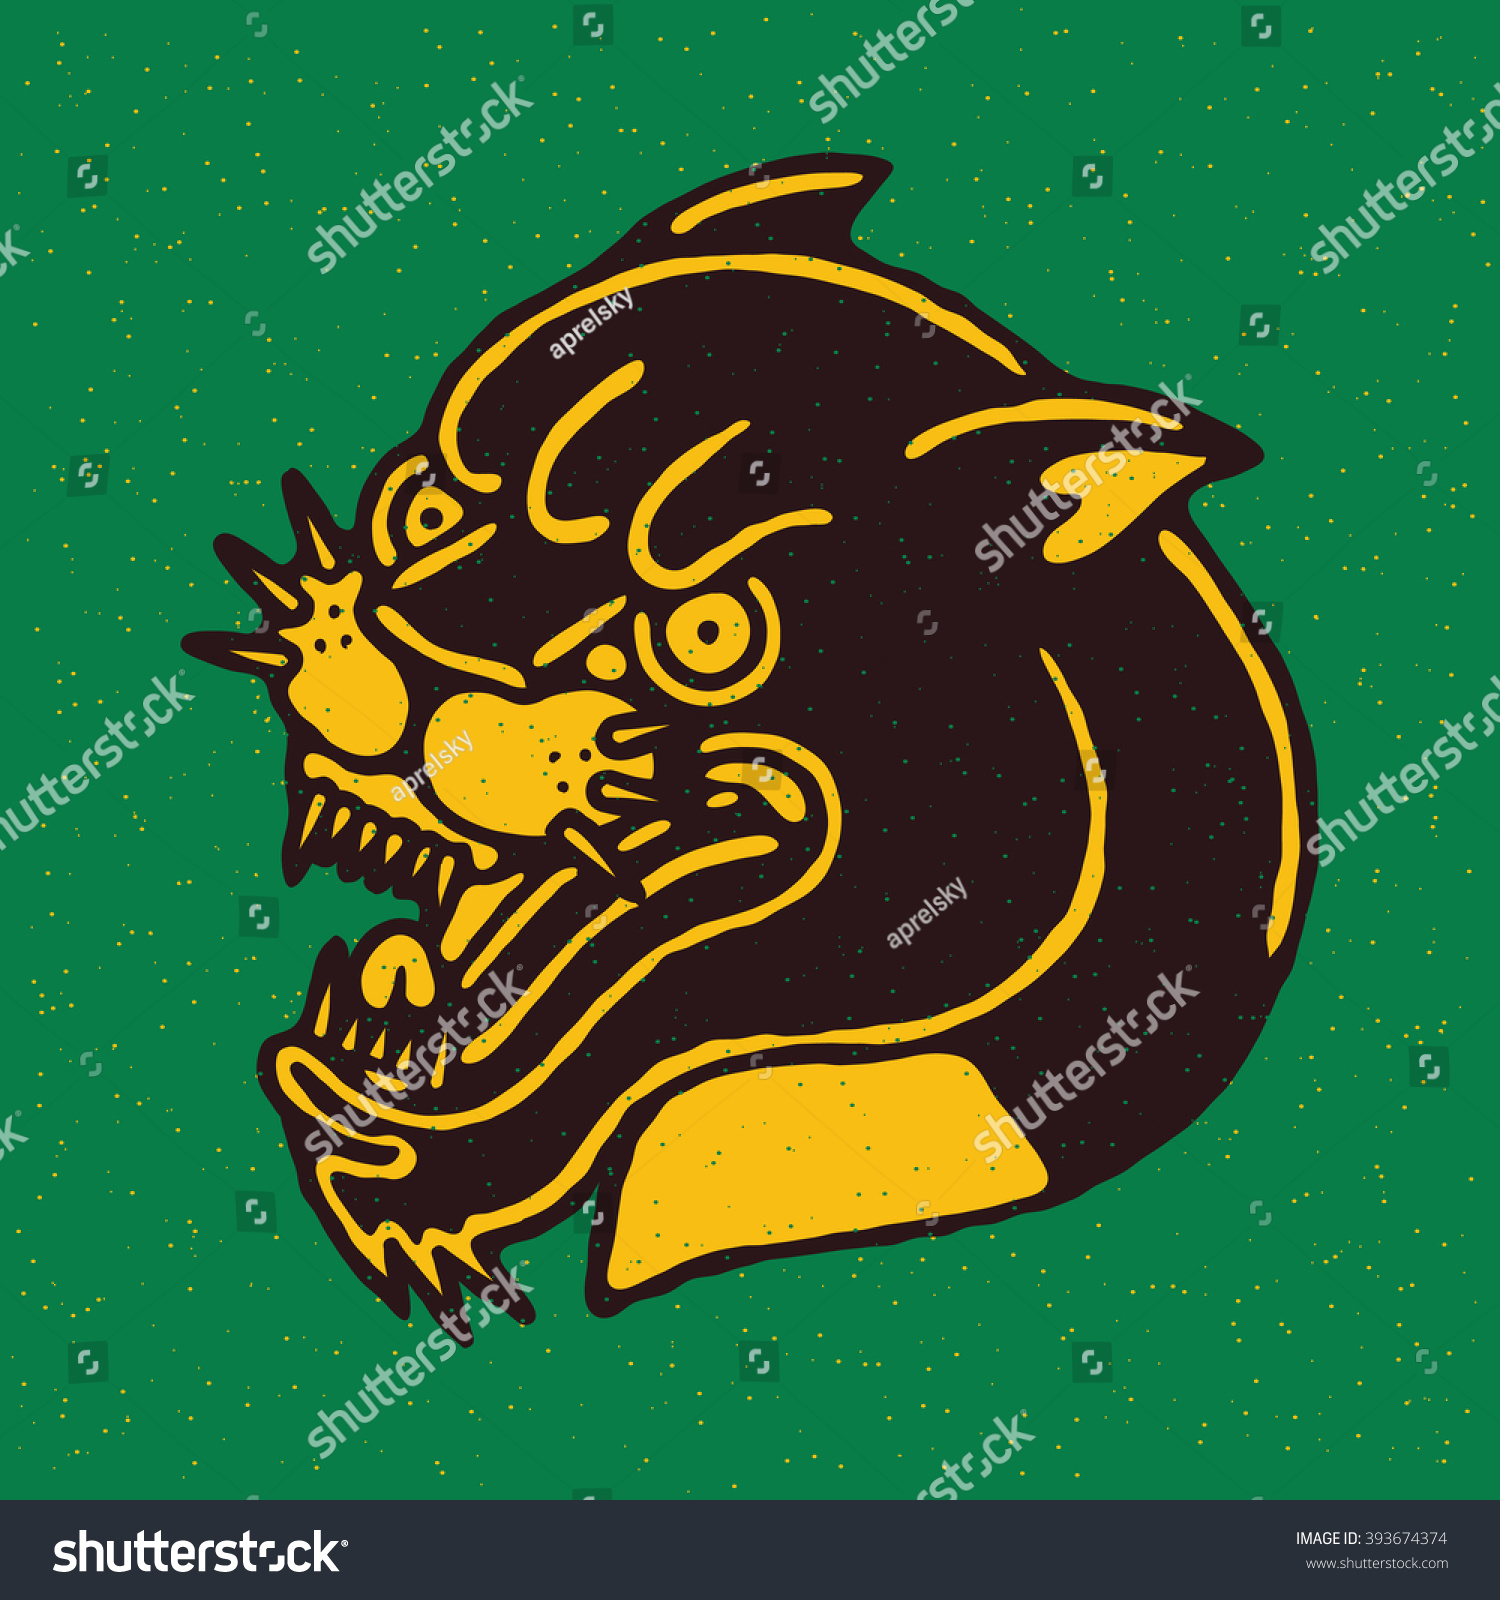 Angry Black Panther Head Traditional Tattoo Flash Vector illustration On Grunge Texture Background